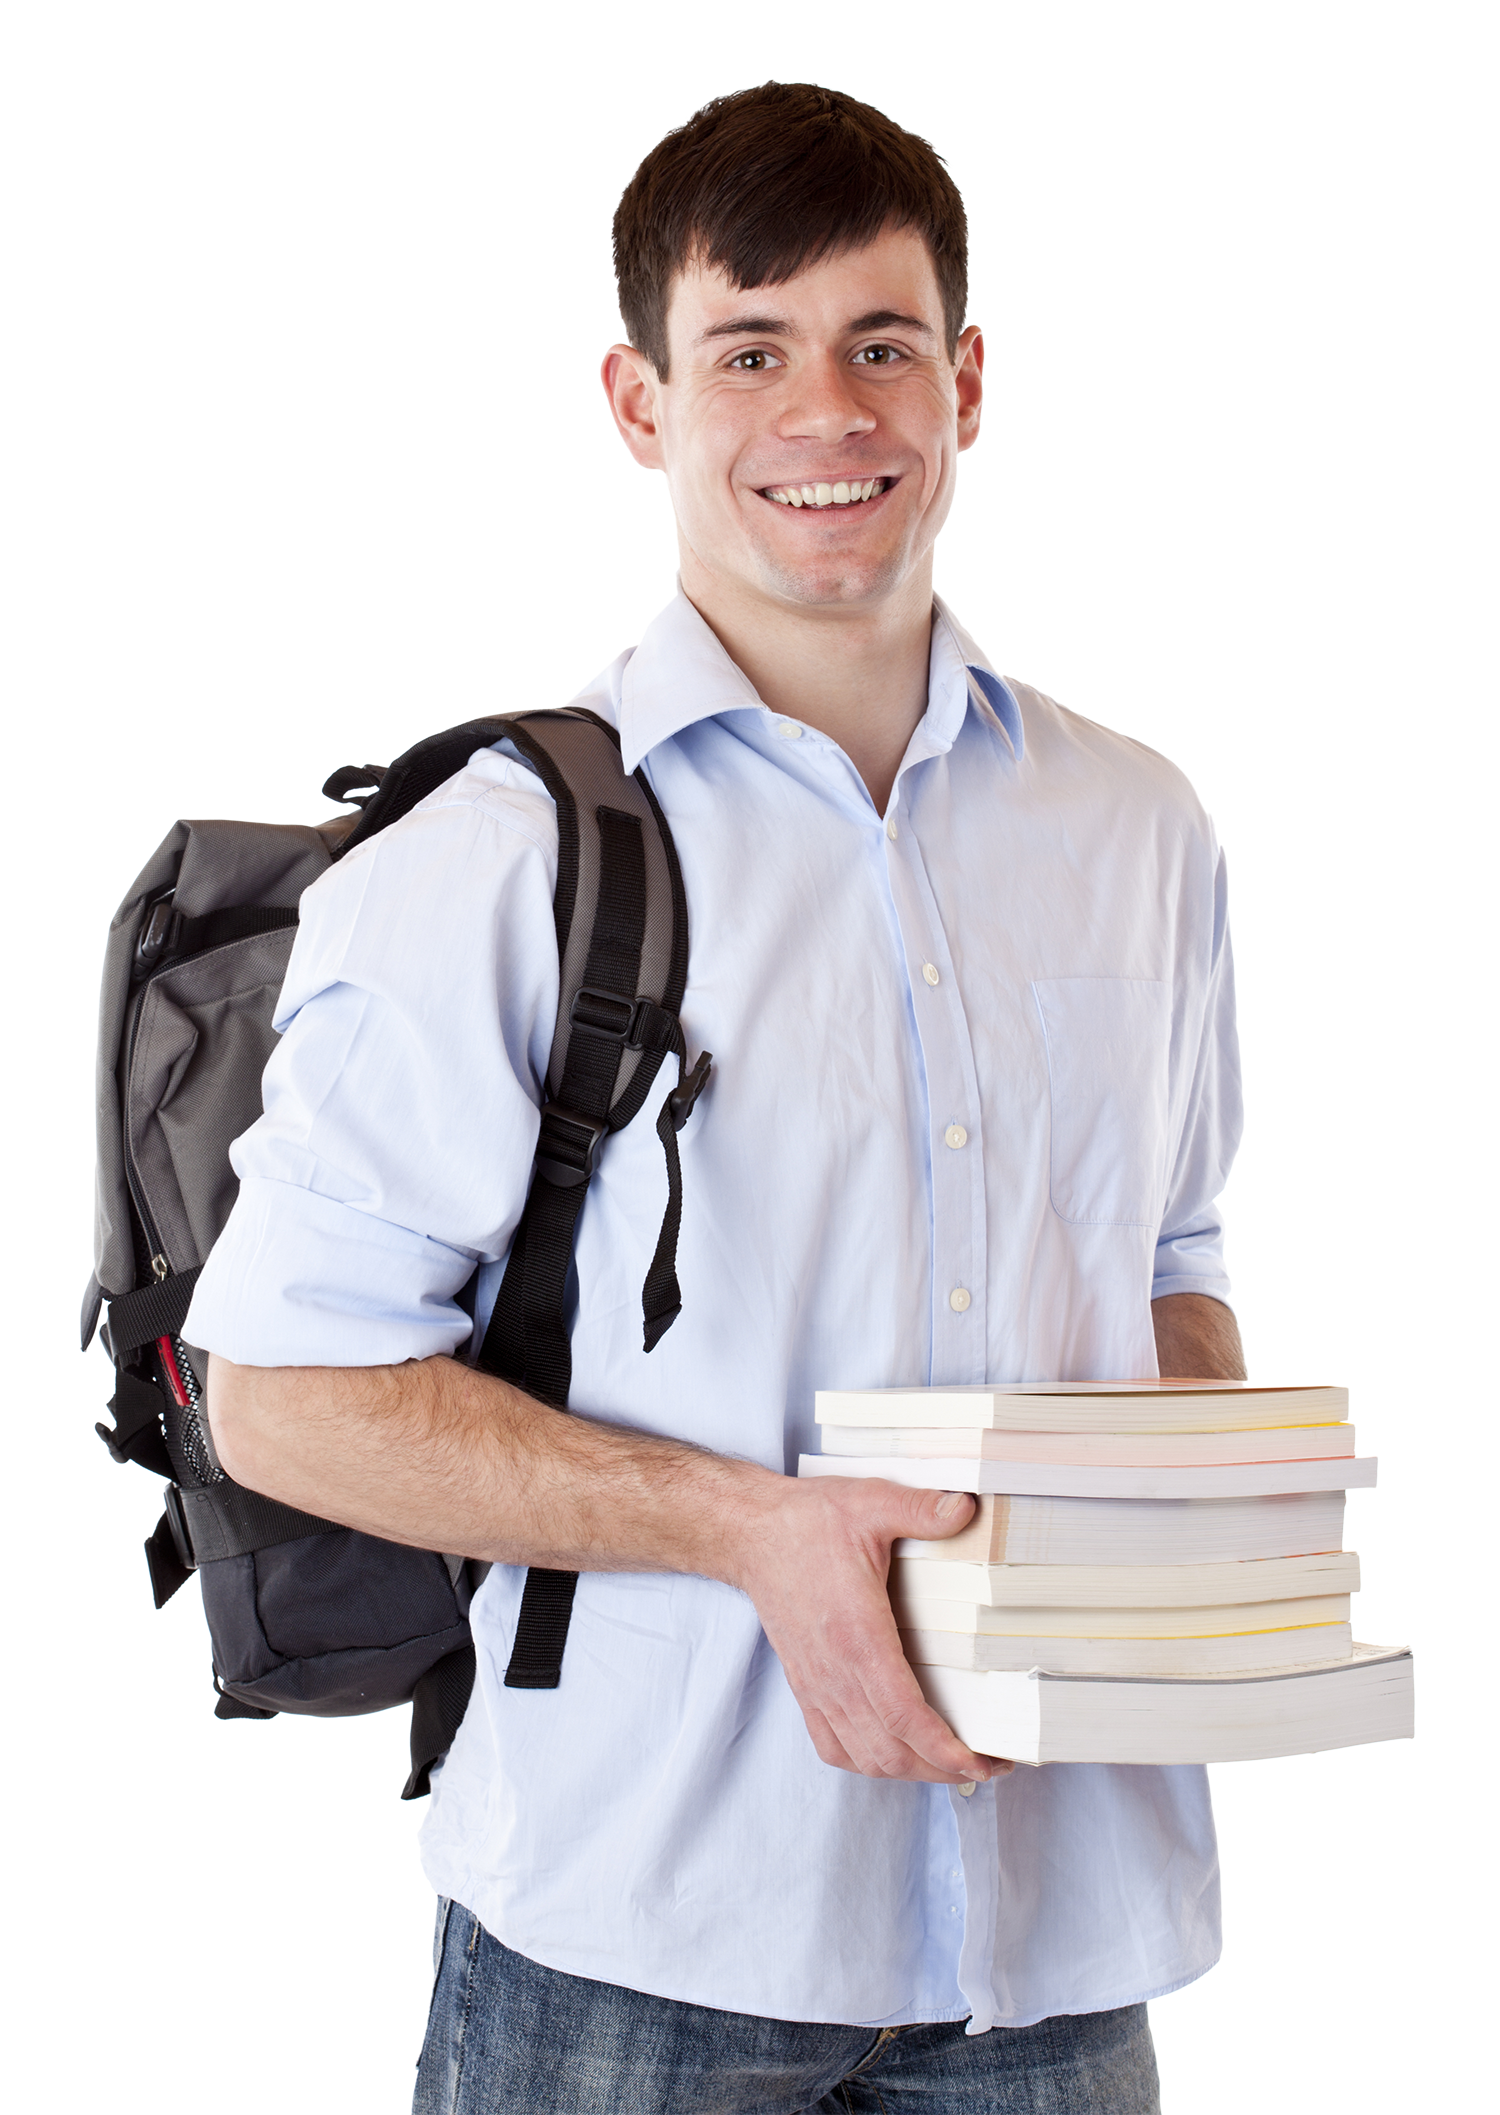 Download for free Student PNG